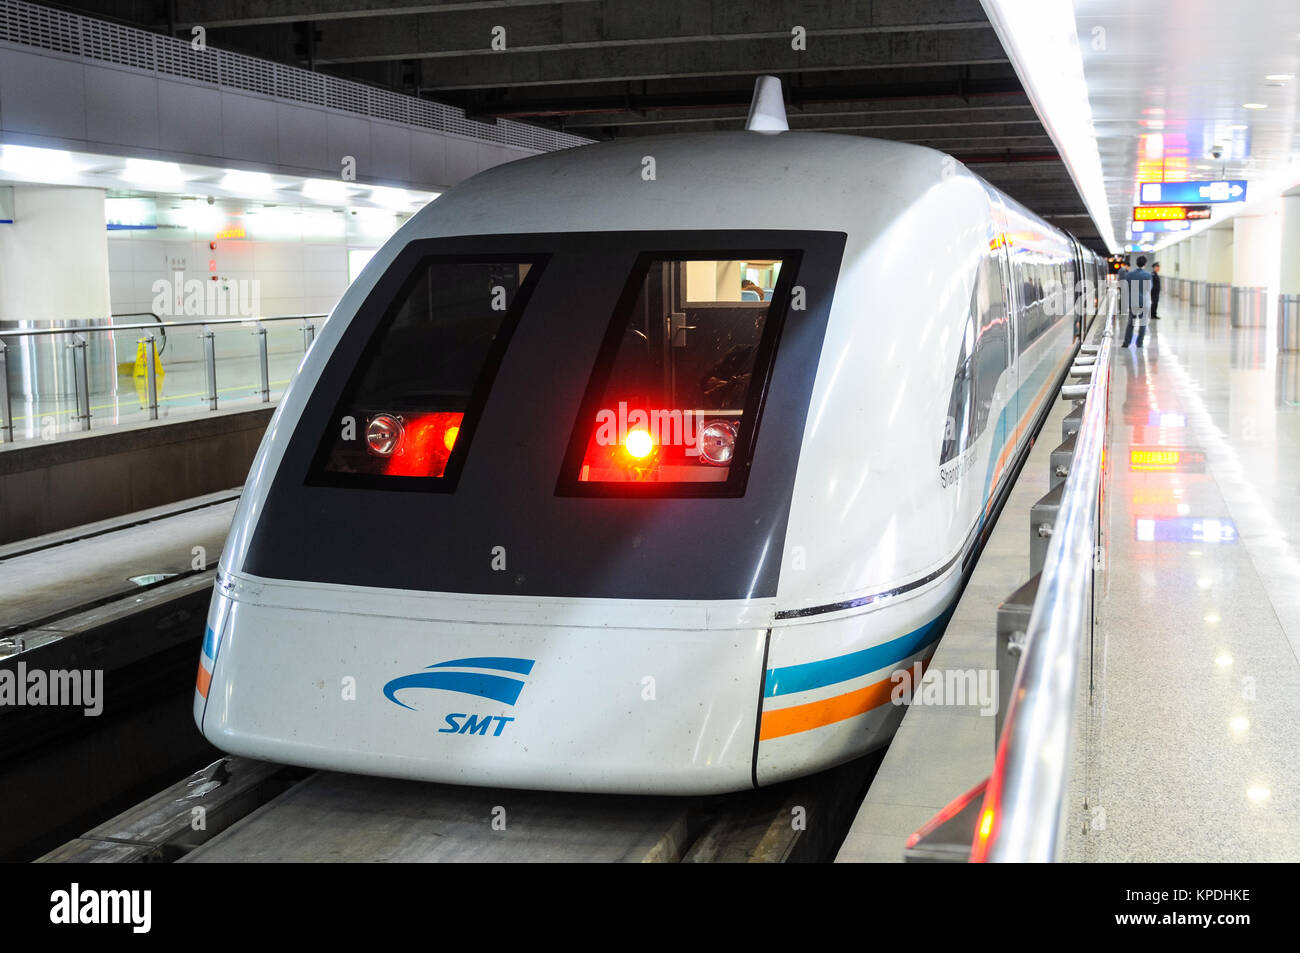 Shanghai Maglev Train - A Maglev Train is ready to depart from the platform at Pudong International Airport in Shanghai, - Stock Image